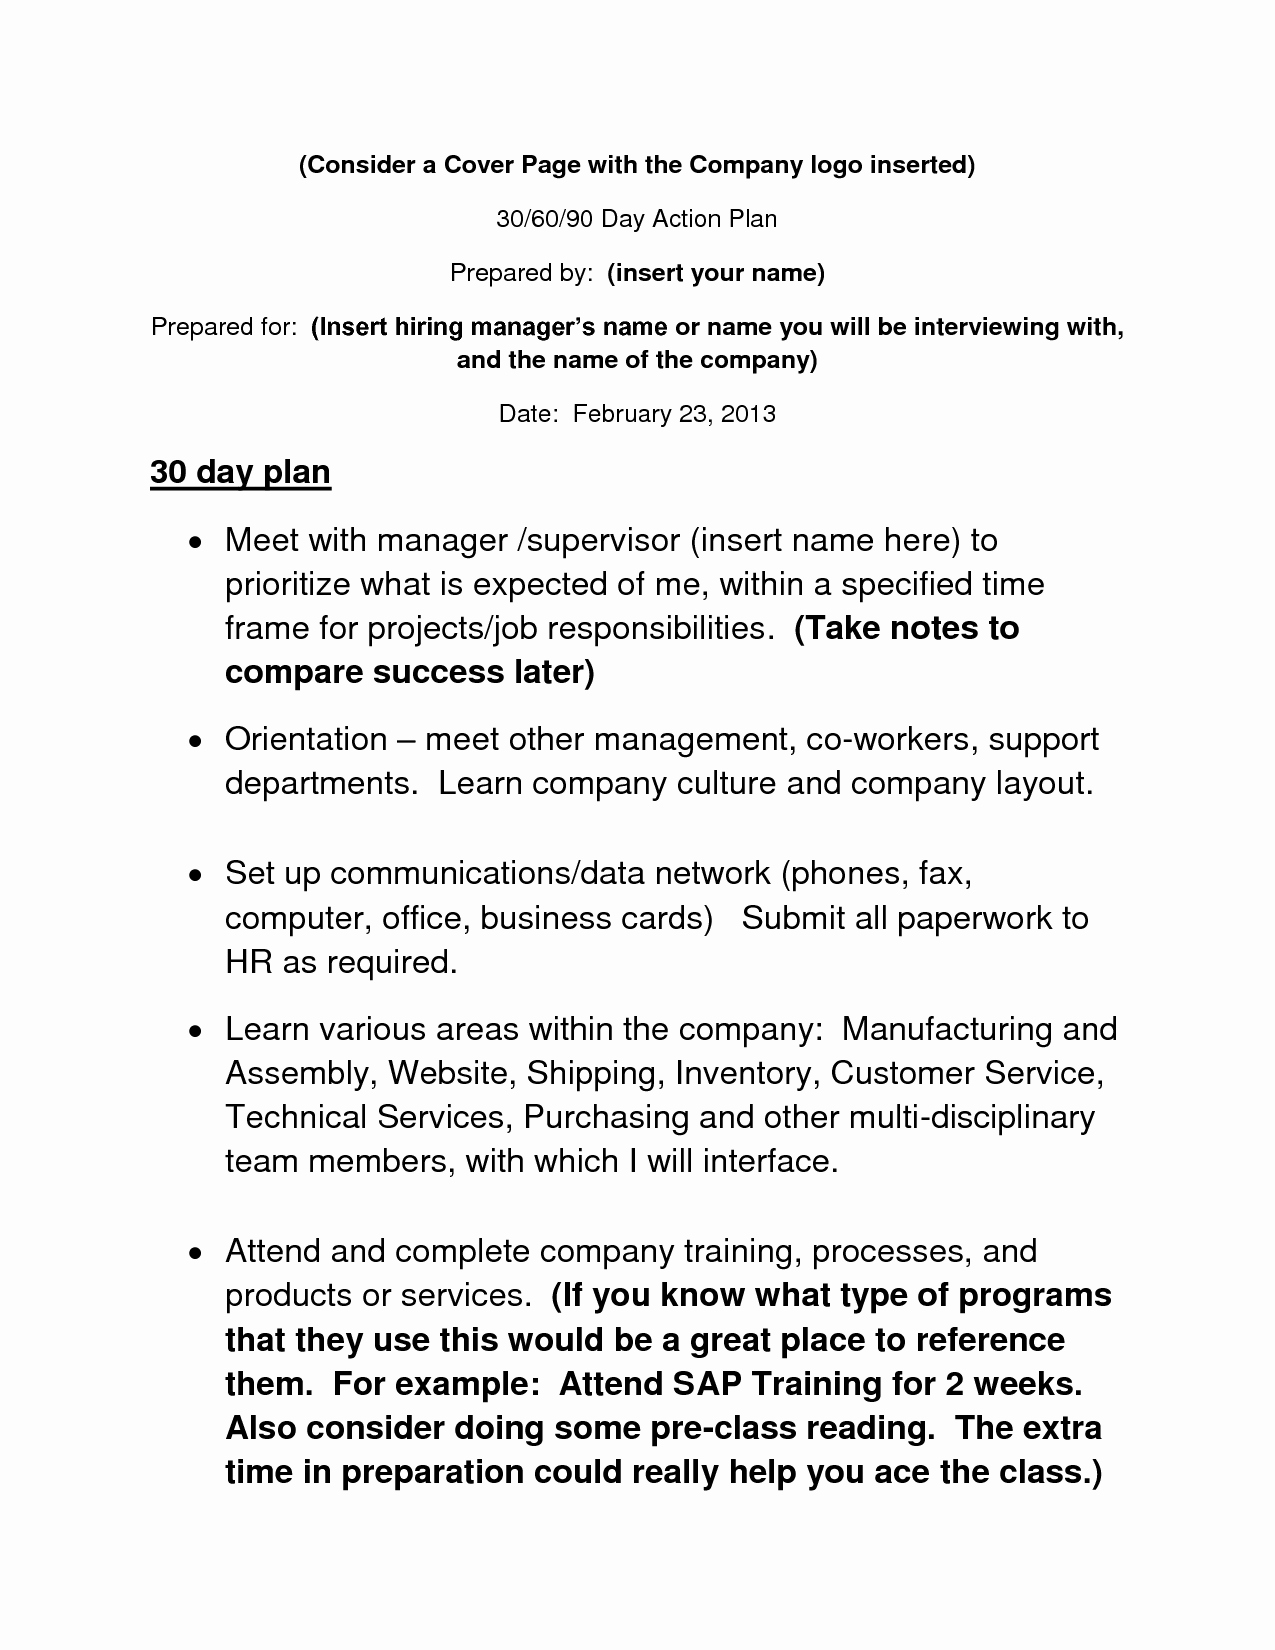 90 Day Business Plan Template Beautiful 30 60 90 Day Action Plan Template Info